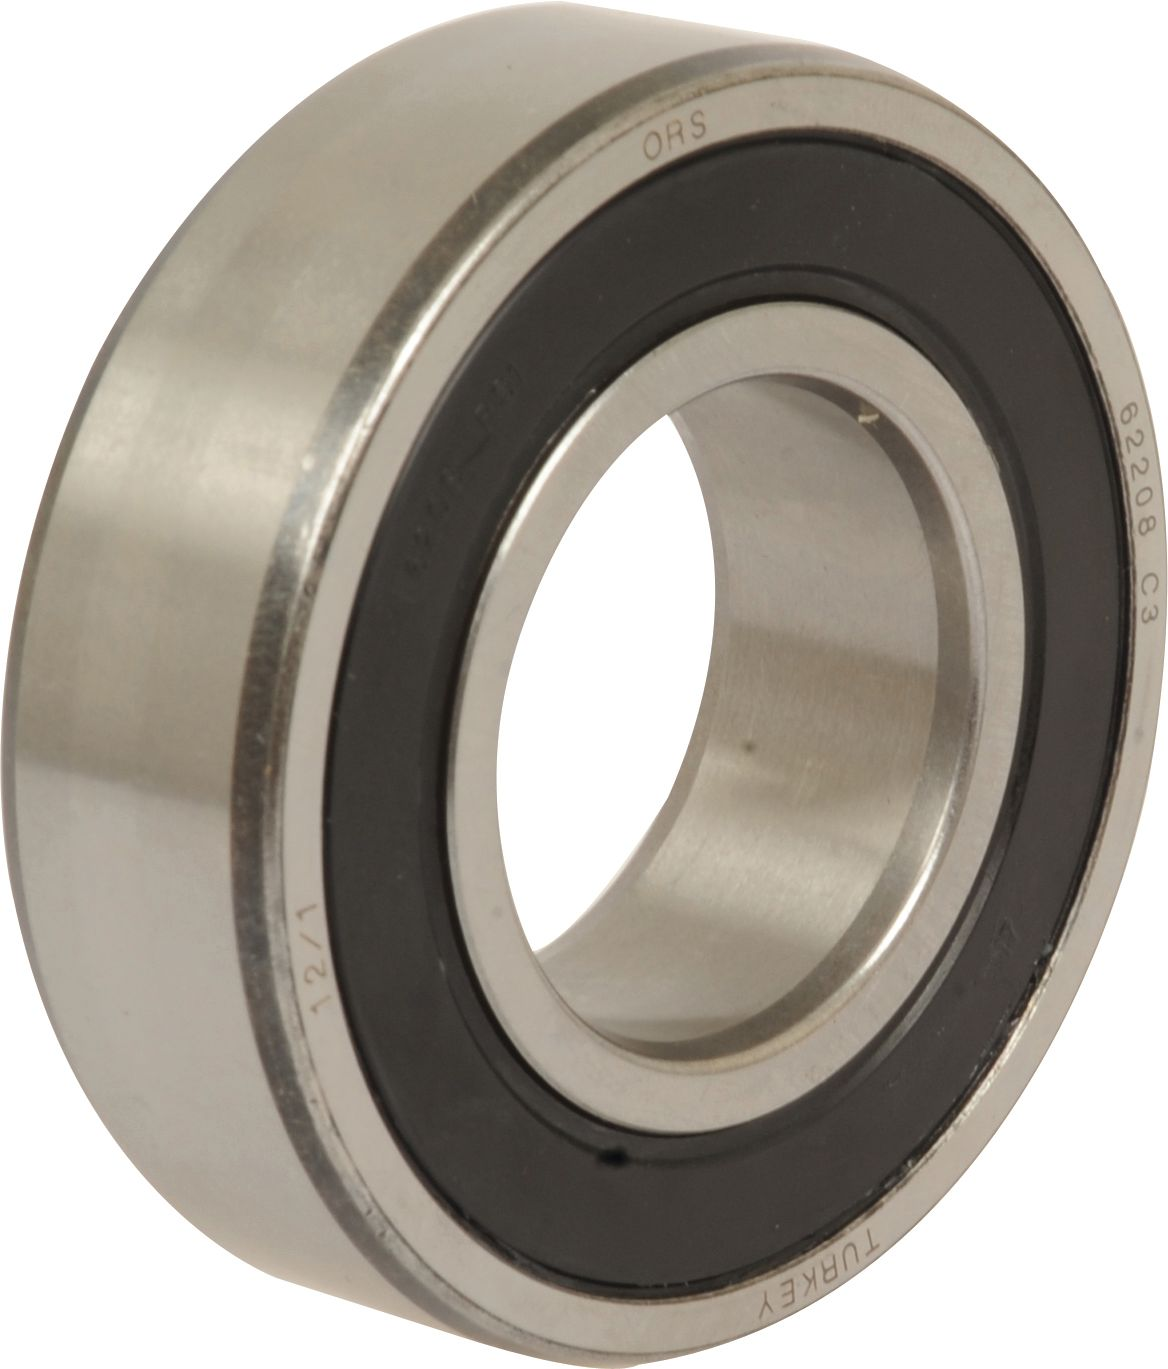 LONG TRACTOR DEEP GROOVE BEARING 26822